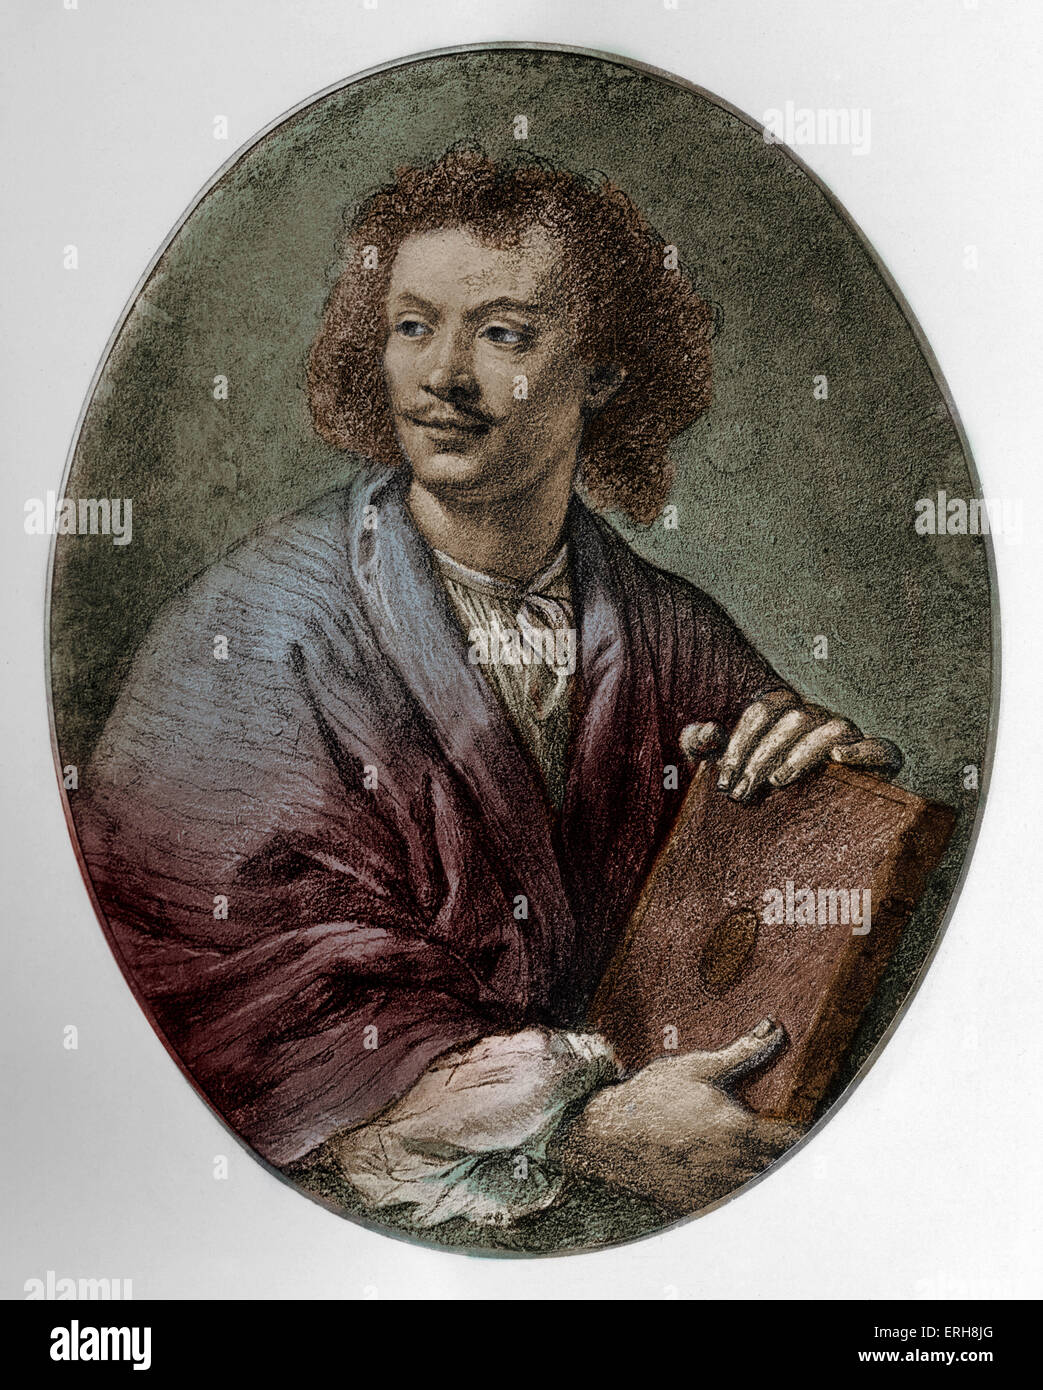 Molière (real name Jan-Baptiste Poquelin) - portrait.  French dramatist, comic playwright, and theatre director, - Stock Image